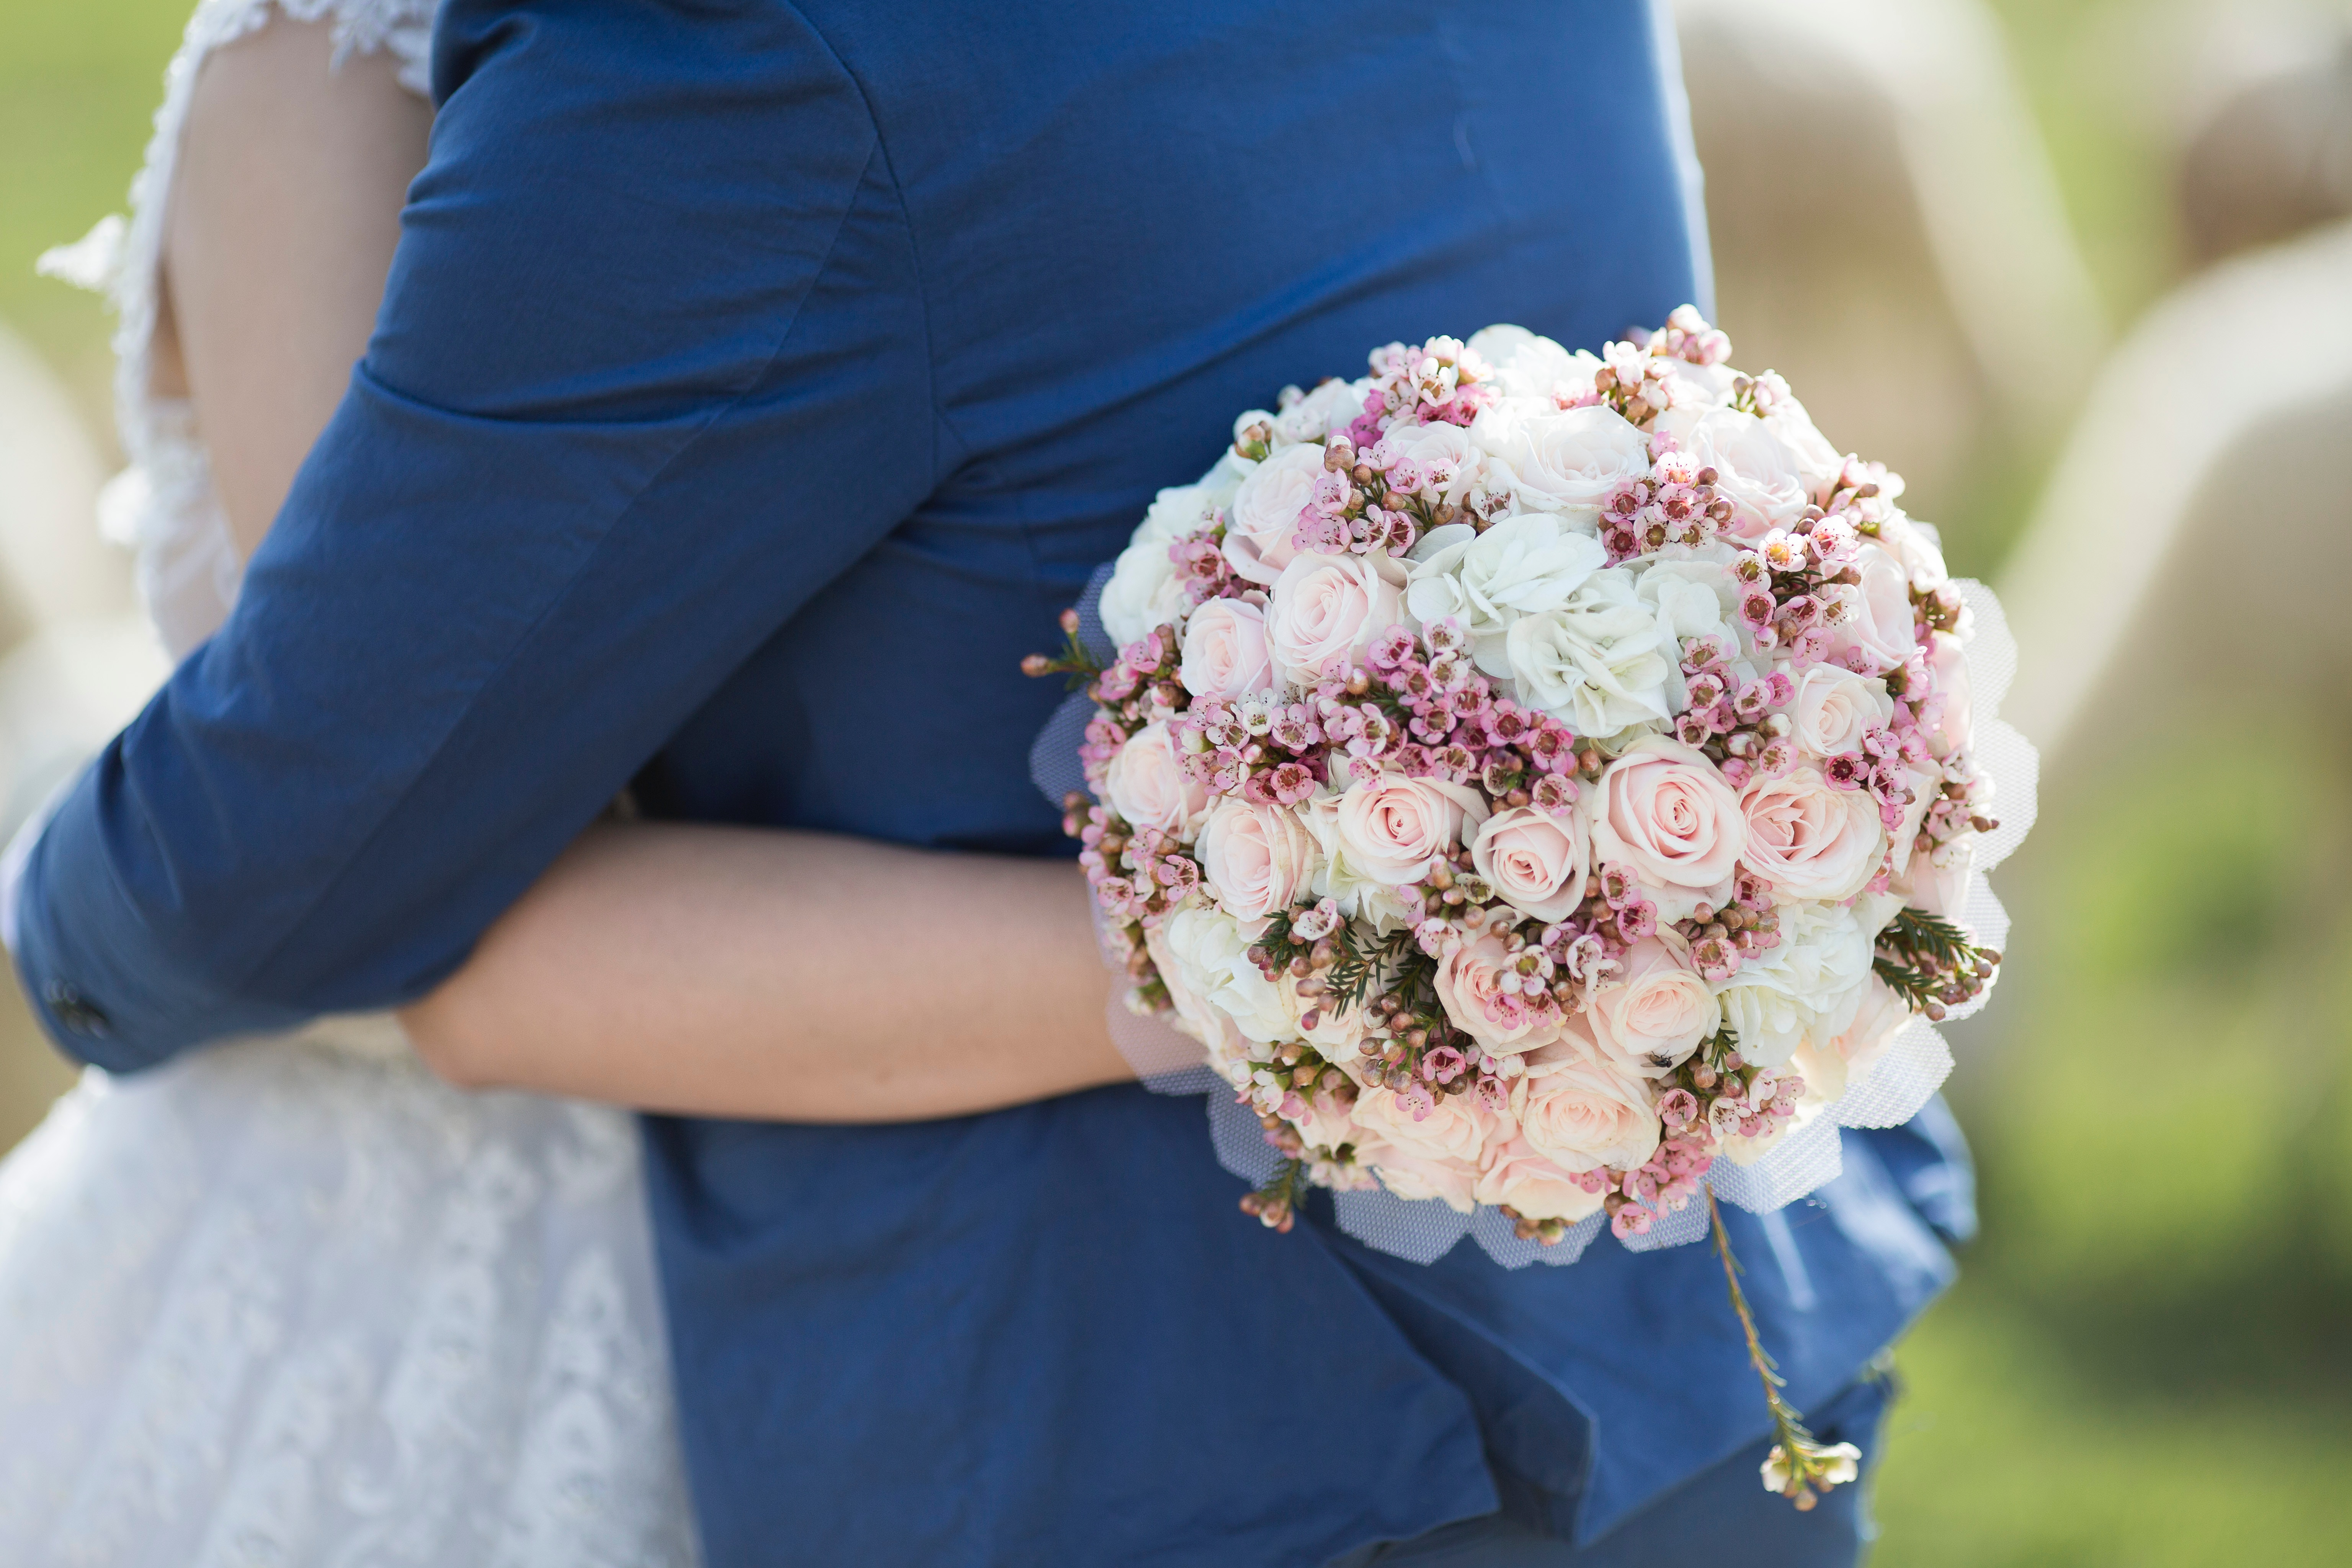 Major Things To Consider Before Booking Your Wedding Venue